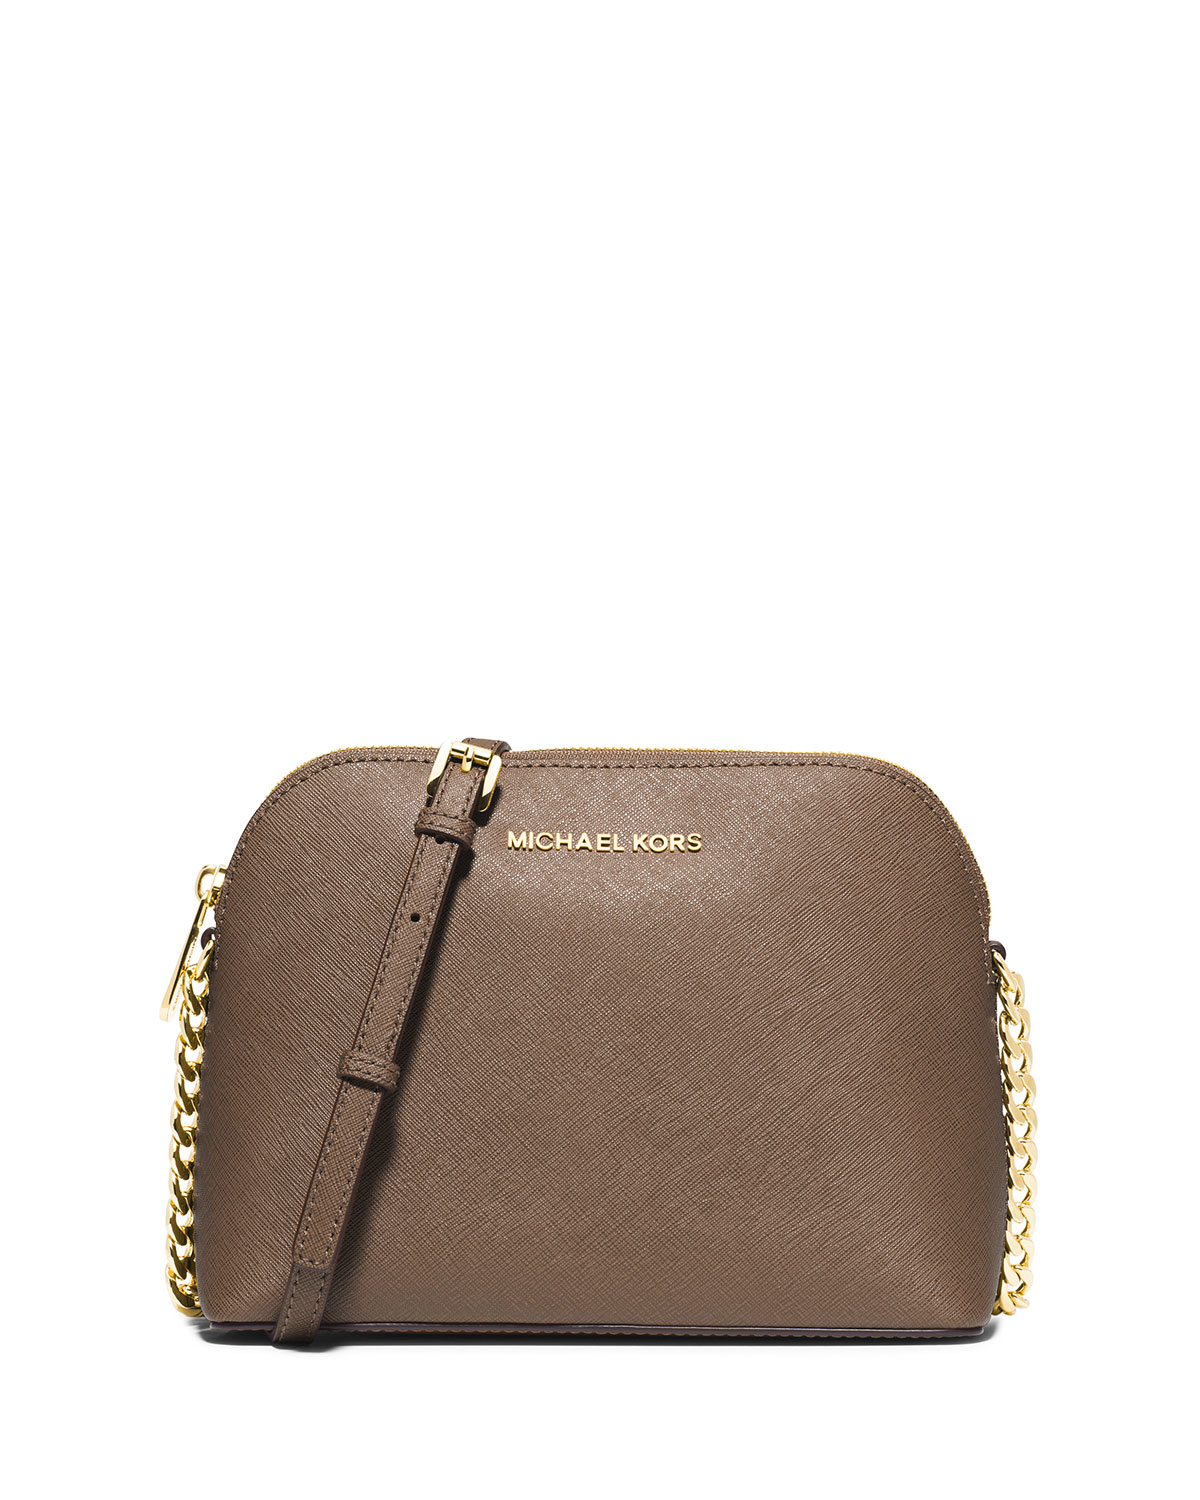 541a9362c35f0 Gallery. Previously sold at  Neiman Marcus · Women s Michael Kors Cindy ...